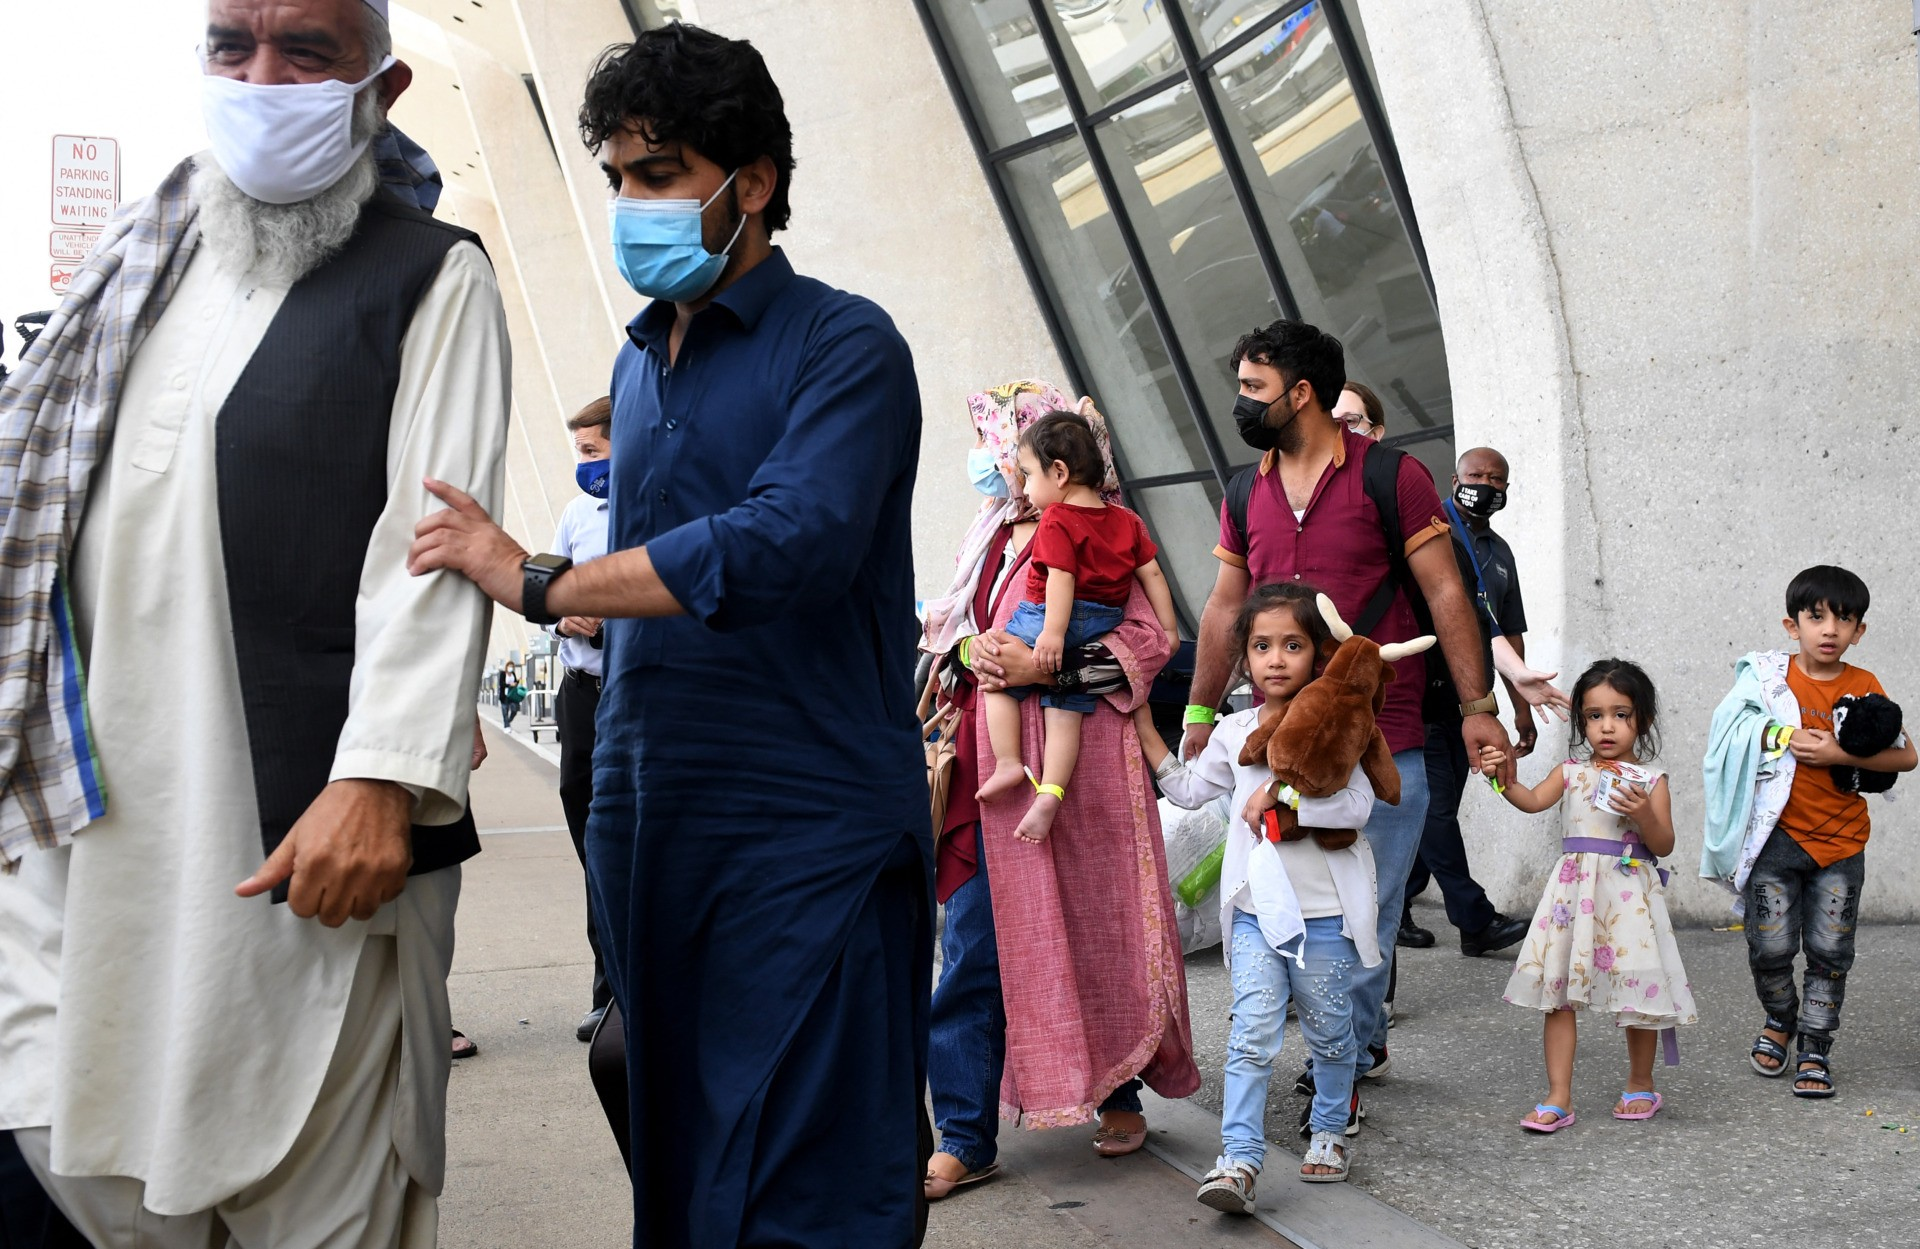 Afghan refugees arrive at Dulles International Airport on August 27, 2021 in Dulles, Virginia, after being evacuated from Kabul following the Taliban takeover of Afghanistan. - The Pentagon said on Friday the ongoing evacuation from Afghanistan faces more threats of attack a day after a suicide bomber and possible associated gunmen killed scores at a Kabul airport gate. (Photo by Olivier DOULIERY / AFP) (Photo by OLIVIER DOULIERY/AFP via Getty Images)